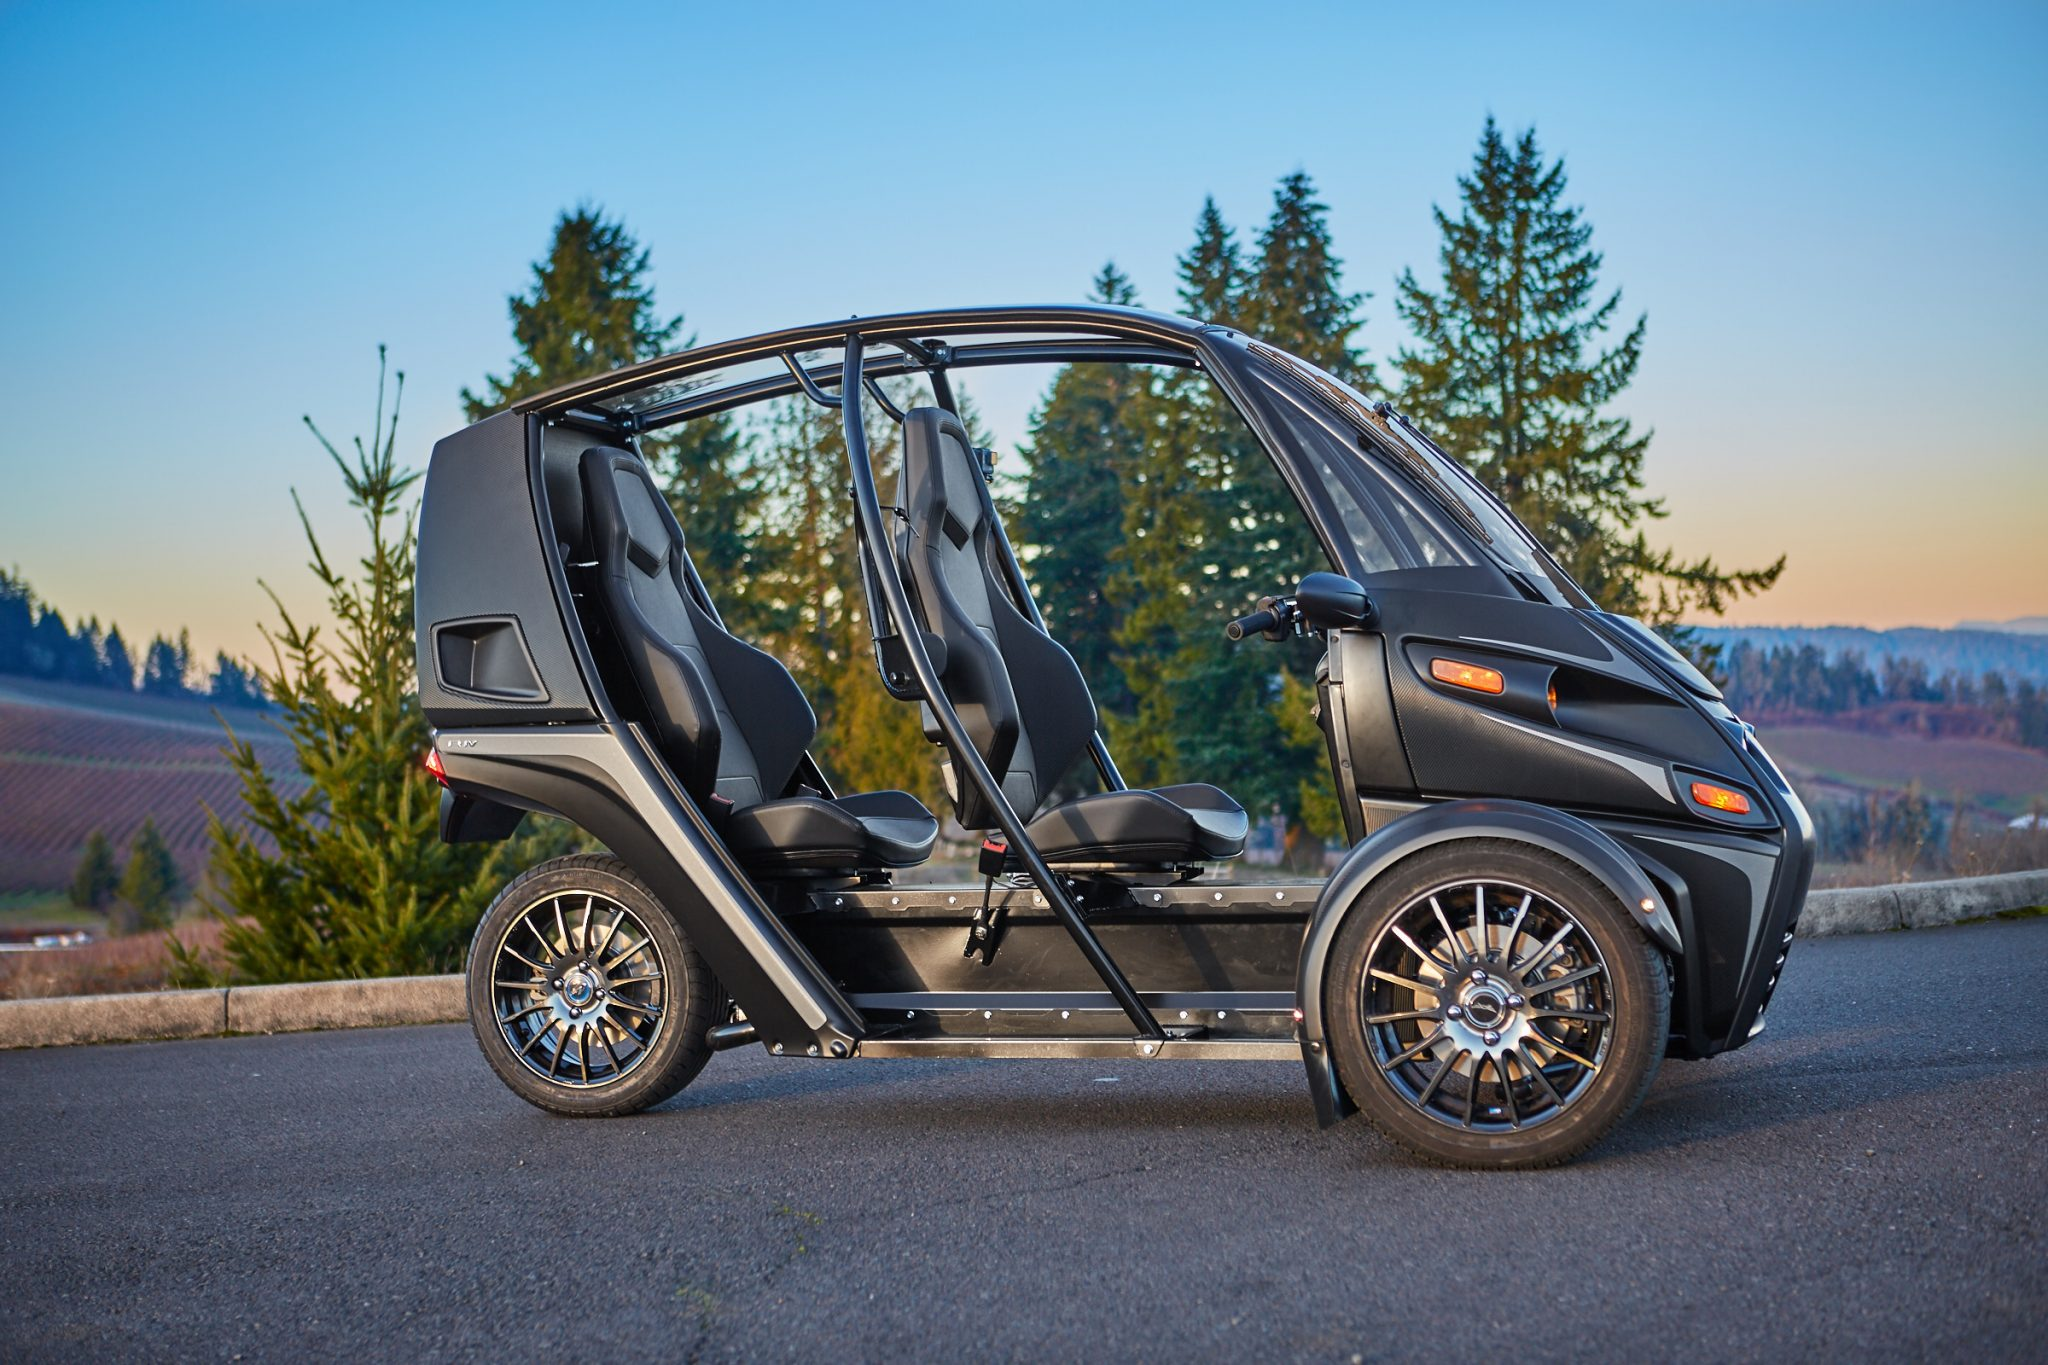 The Arcimoto's Fun Utility Vehicle is integrated with 3D printed suspension parts. Photo via Arcimoto.